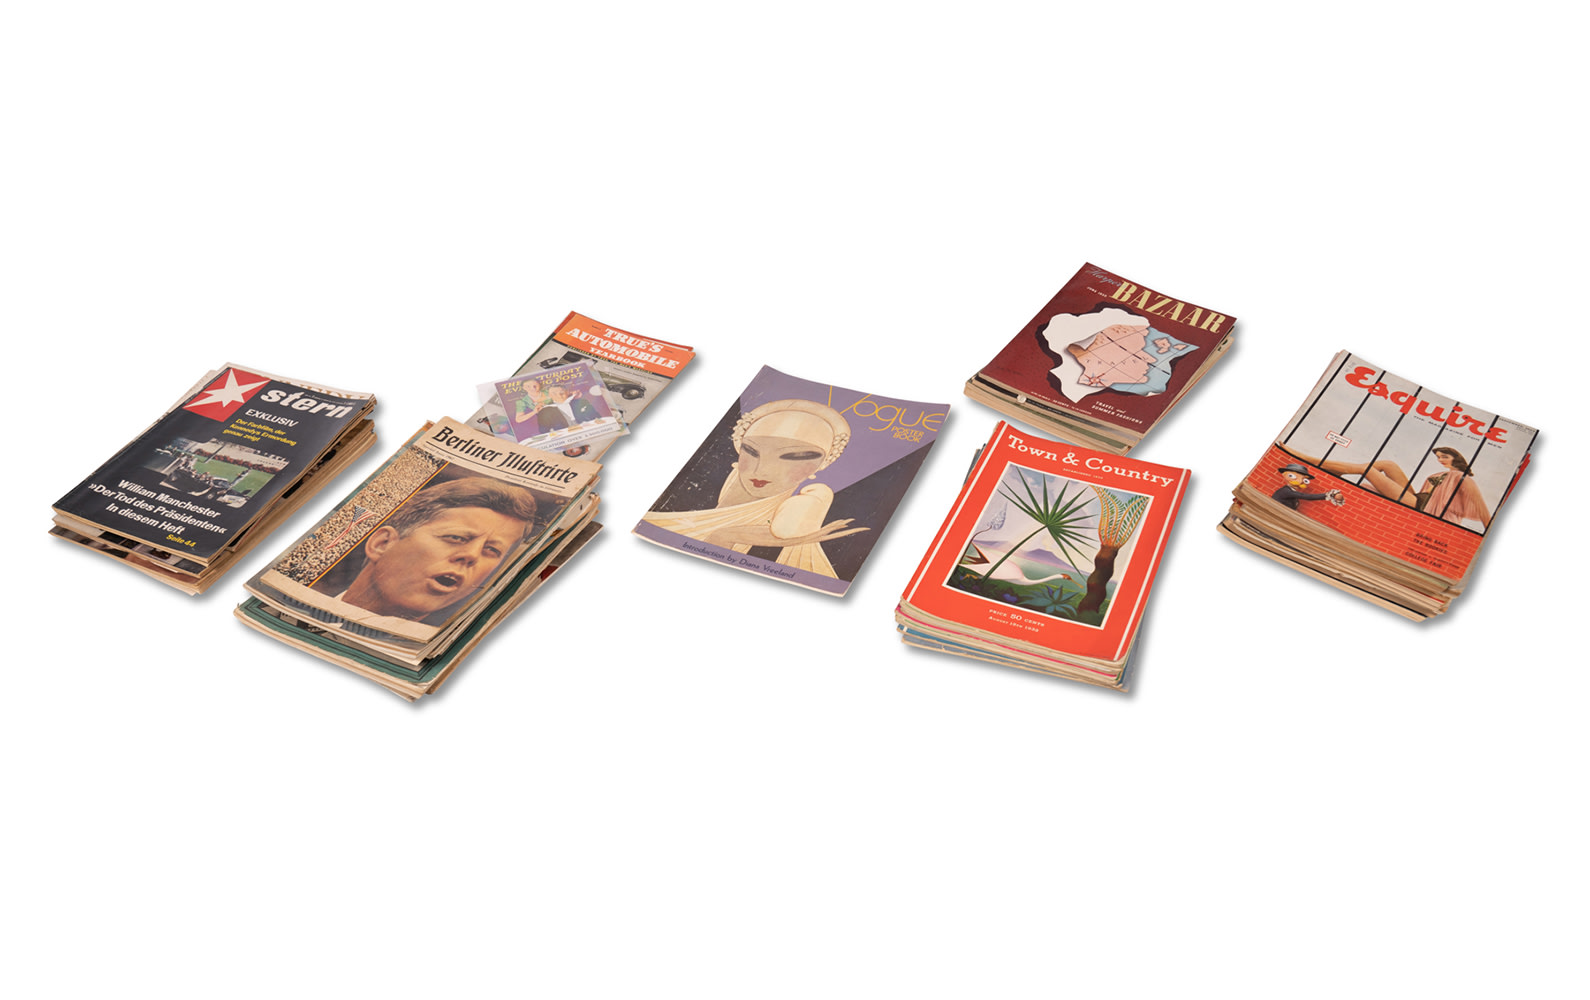 Assorted Harper's Bazaar, Esquire, Town & Country, and Other Period Magazines, c. 1930s–1950s